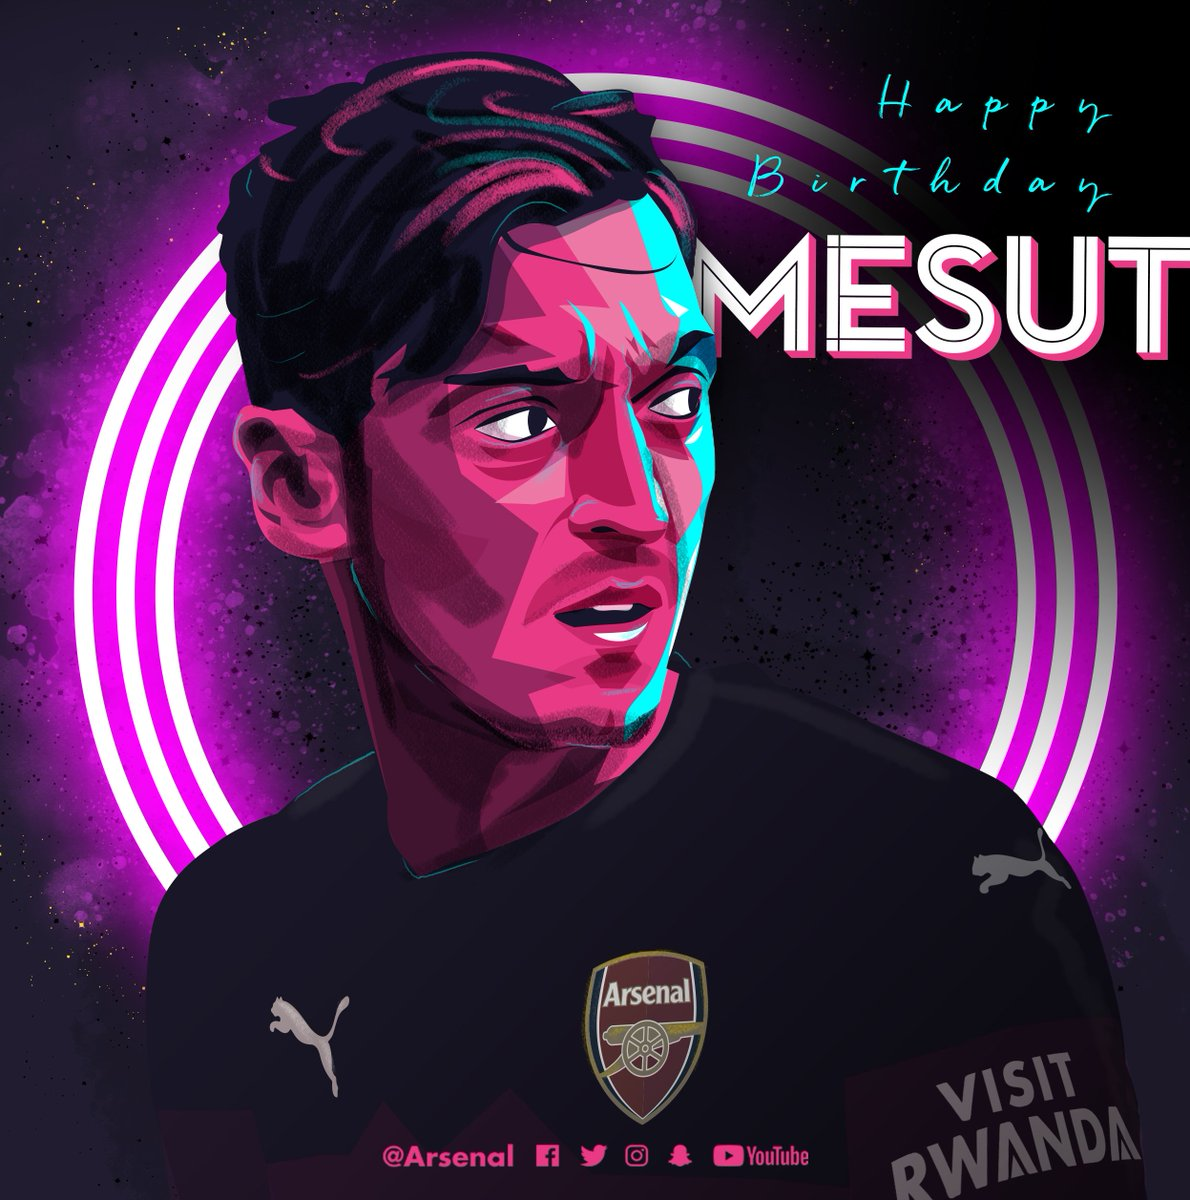 🎈 Our No 10 turns 30 today!   We hope you have a great birthday, @MesutOzil1088 ❤️